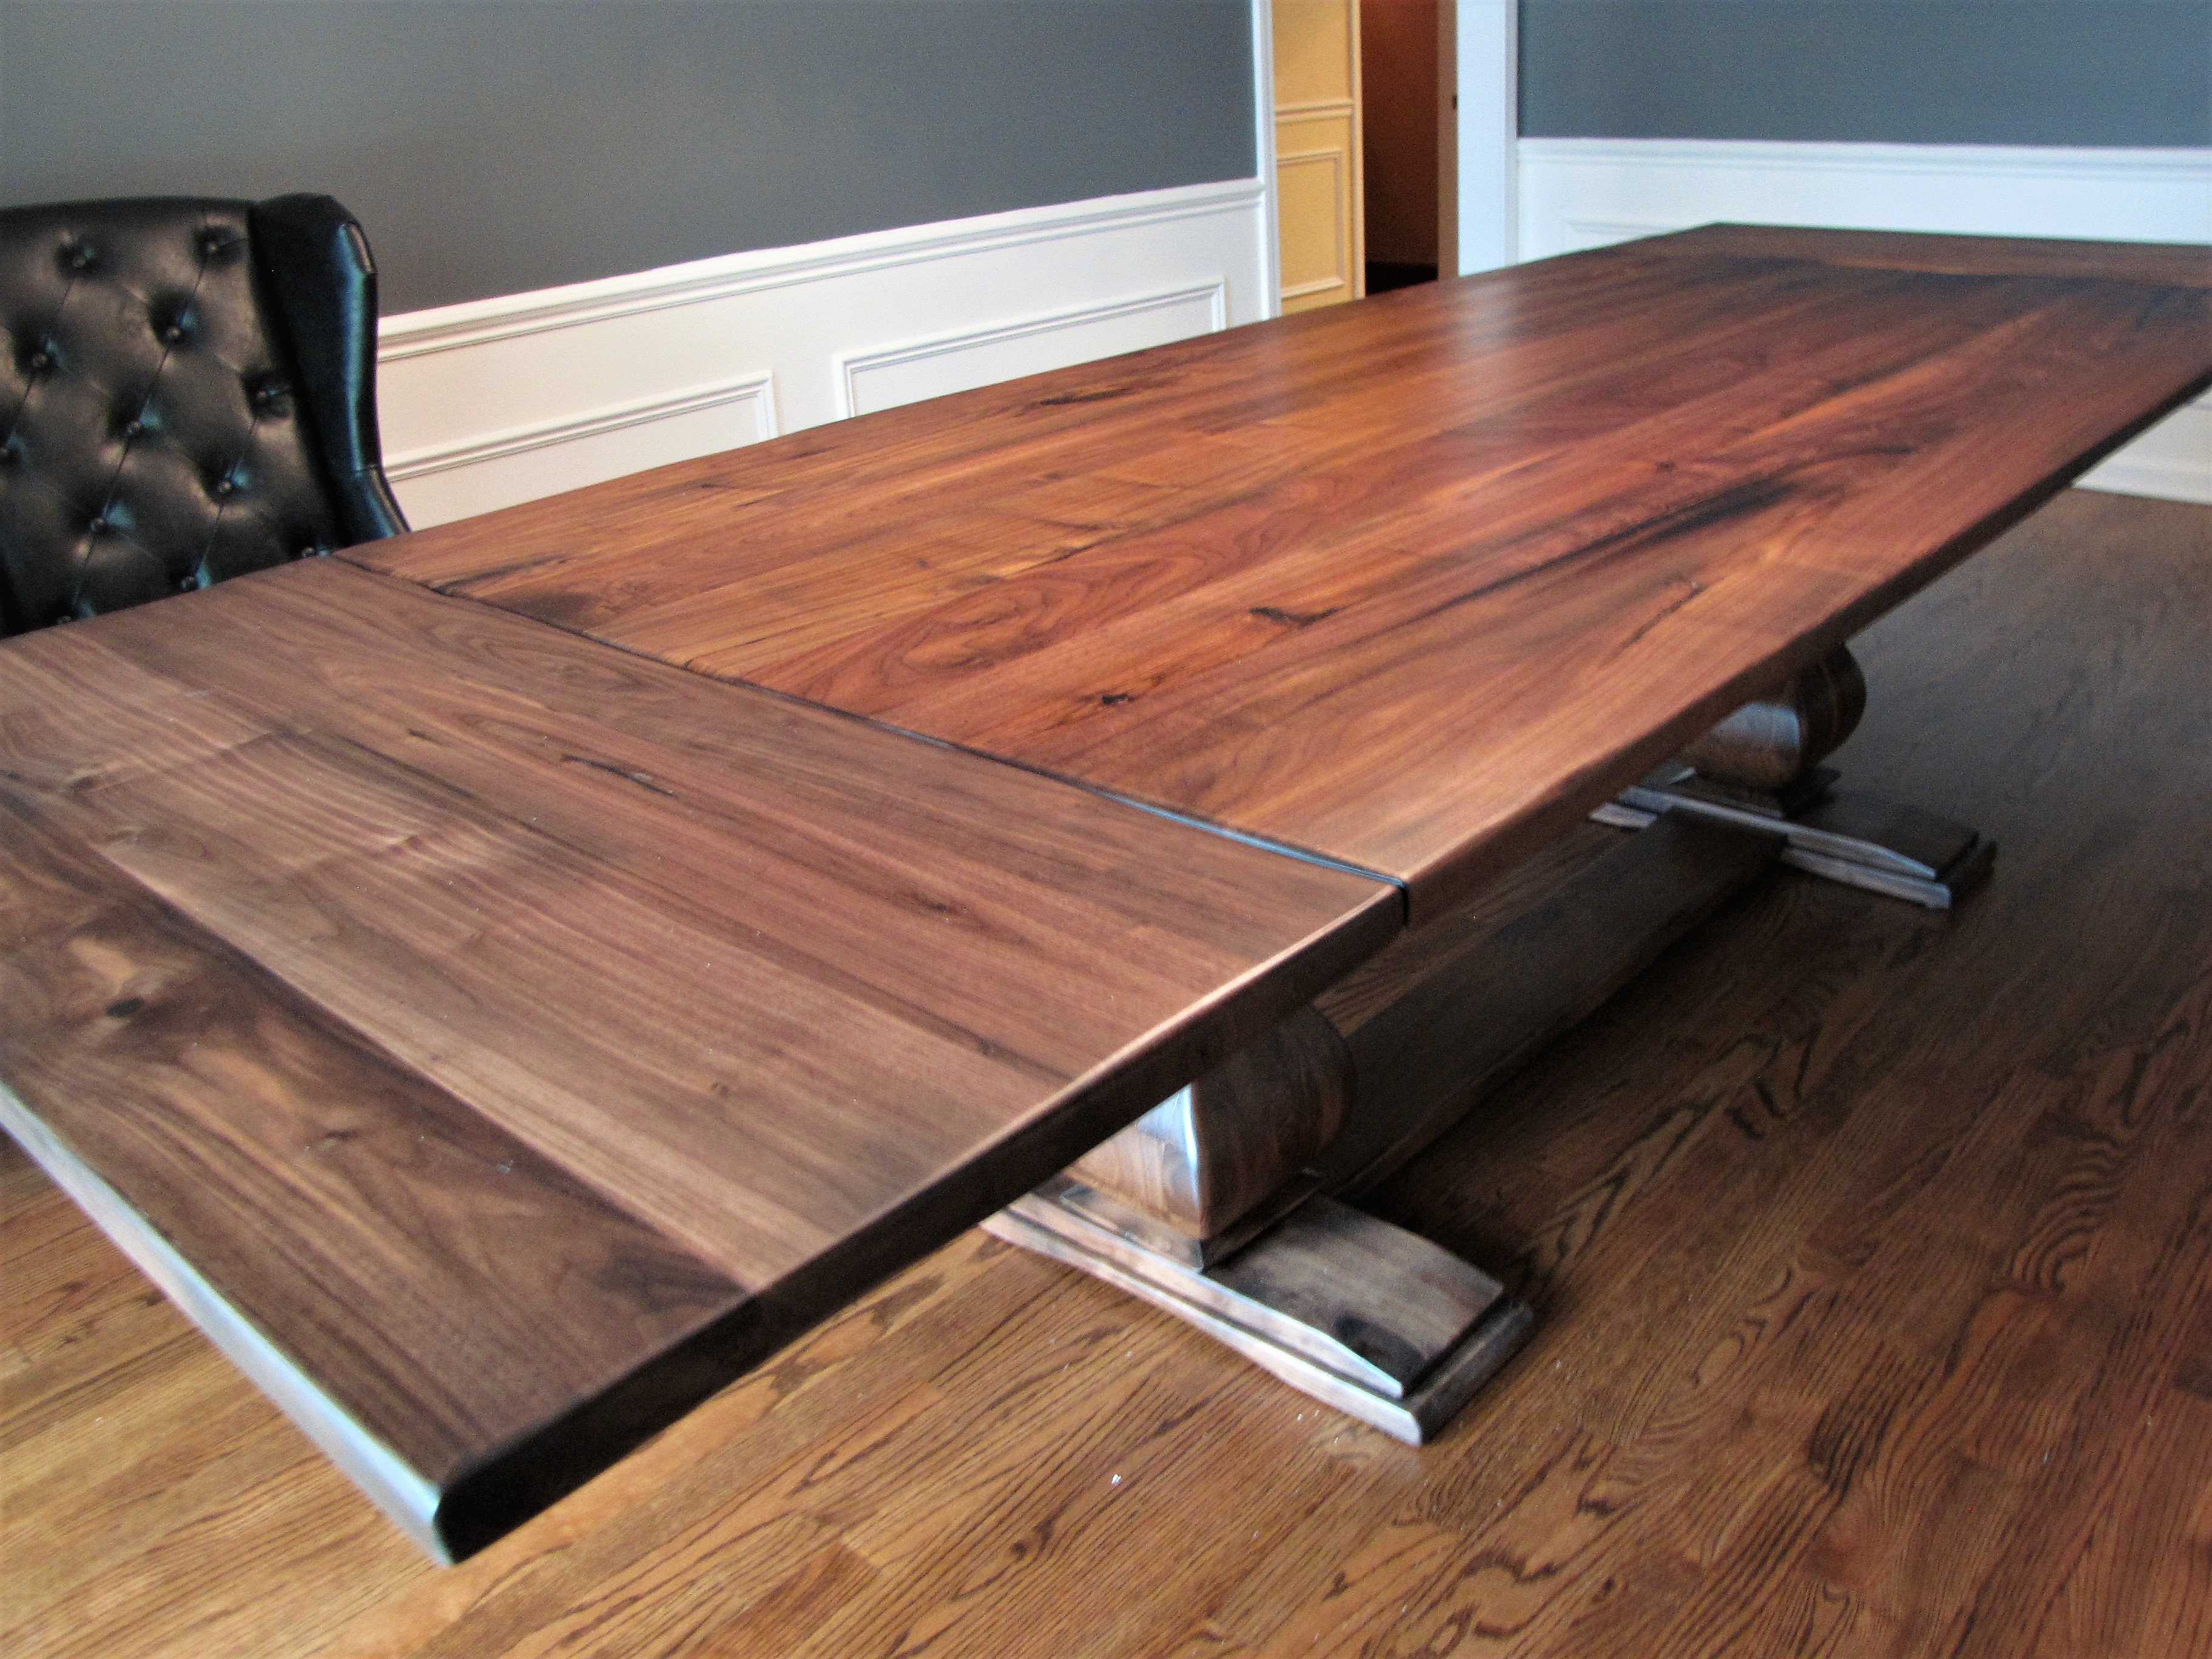 Walnut table with table leaves and belly pedestals